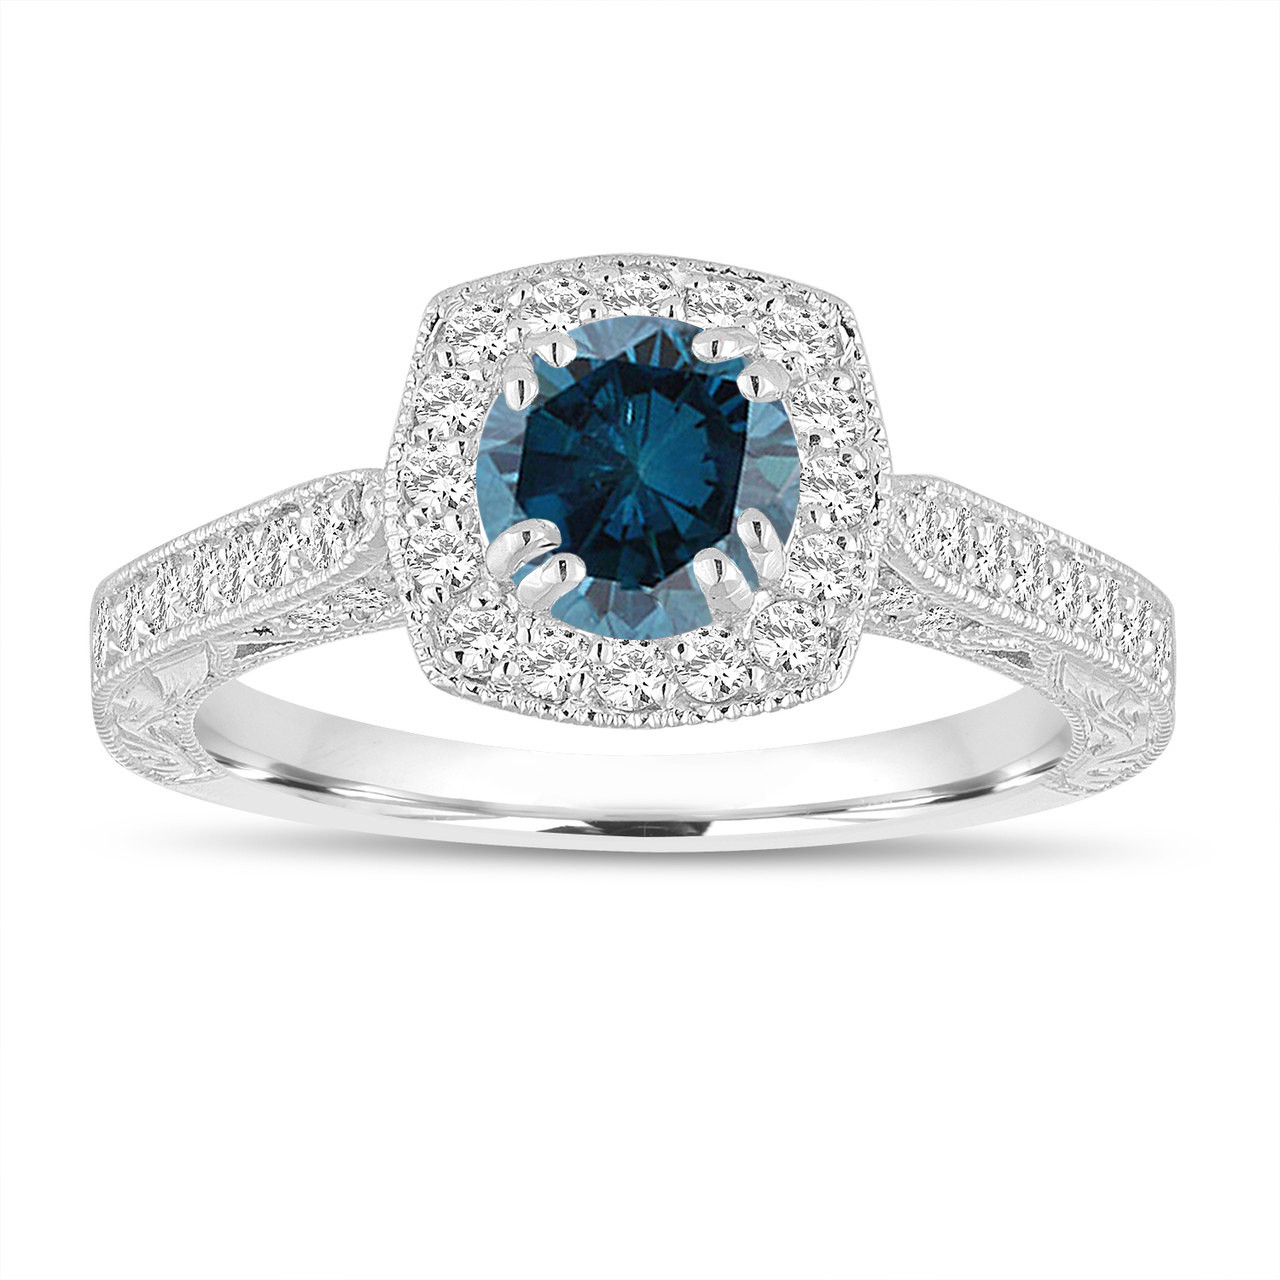 Fancy Blue Diamond Engagement Ring 116 Carat 14k White. Grecian Engagement Rings. Audrey Rose Rings. Trinity Rings. Month Day Wedding Rings. Fantastic Engagement Rings. Huge Engagement Rings. Two Life Engagement Rings. Sqaure Engagement Rings